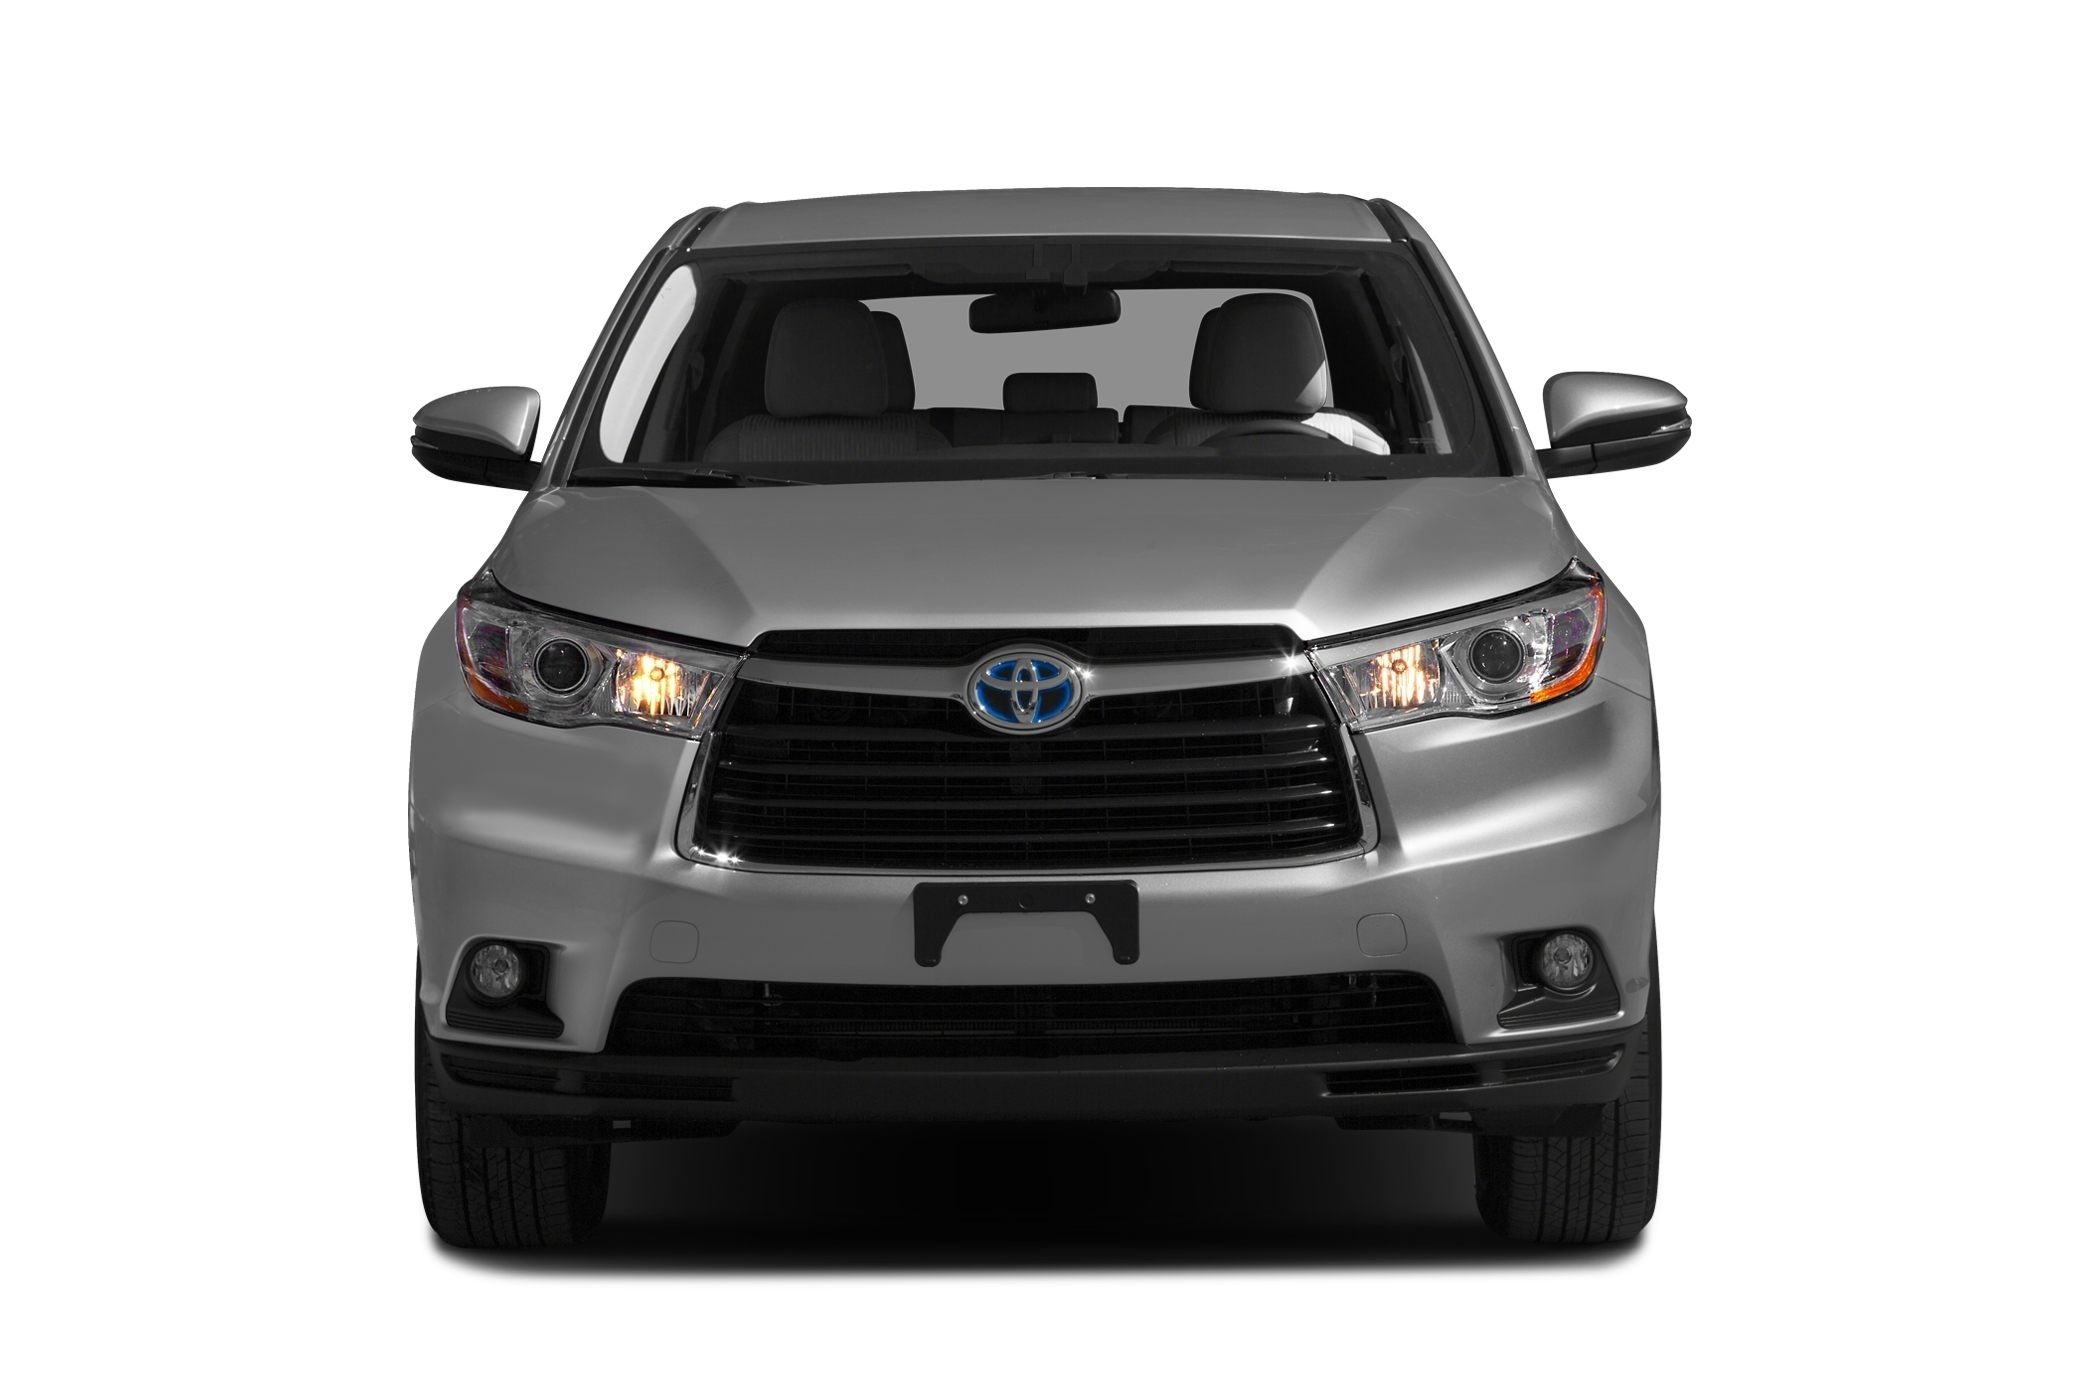 2015 highlander invoice 2015 toyota highlander invoice price invoice template ideas 2100 X 1386